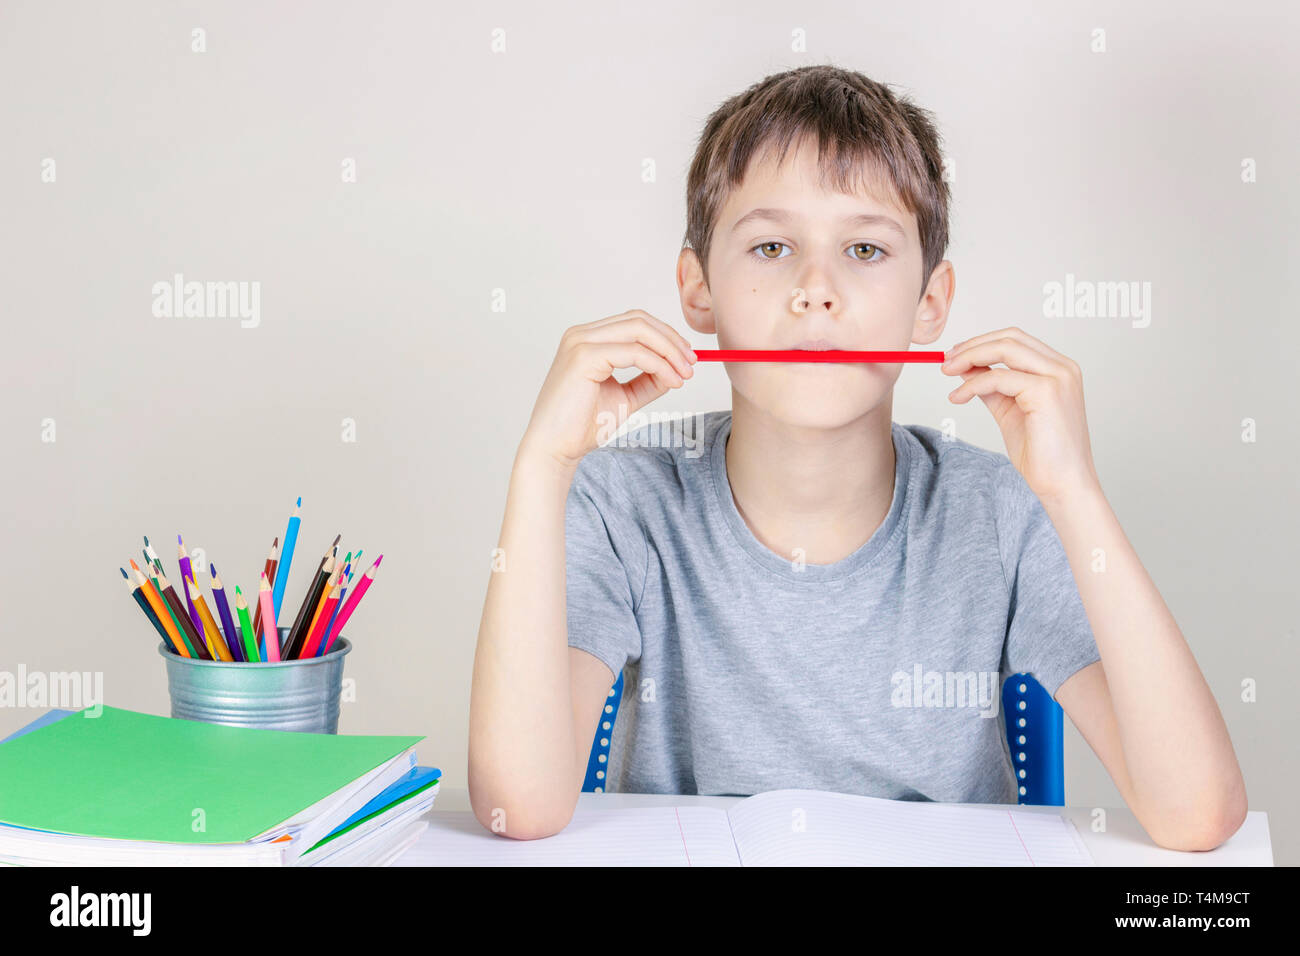 Kid doing homework at the table and thinking or dreaming - Stock Image